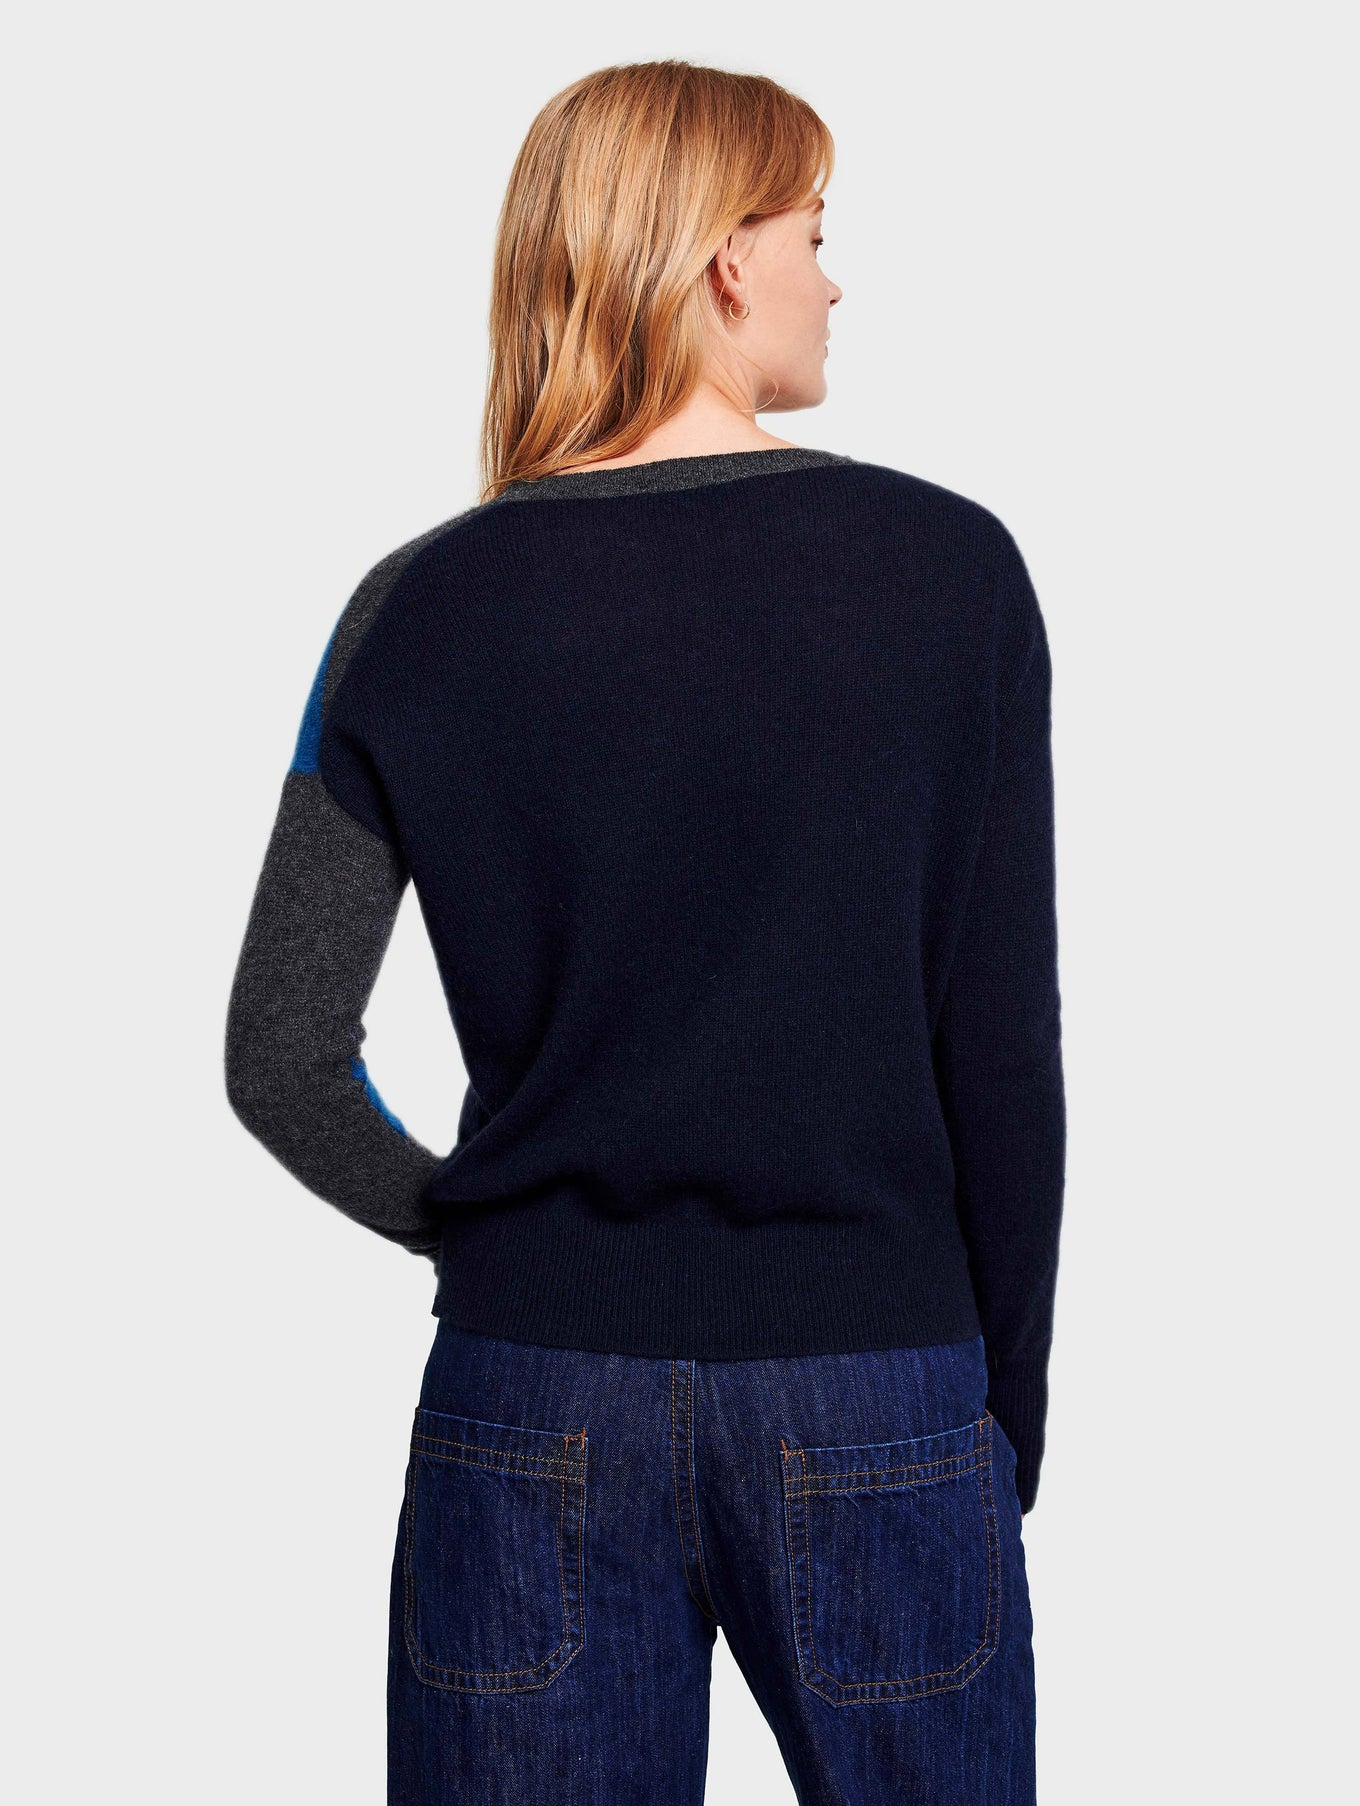 Cashmere Exploded Star Crewneck - Cosmic Teal Multi - Image 3